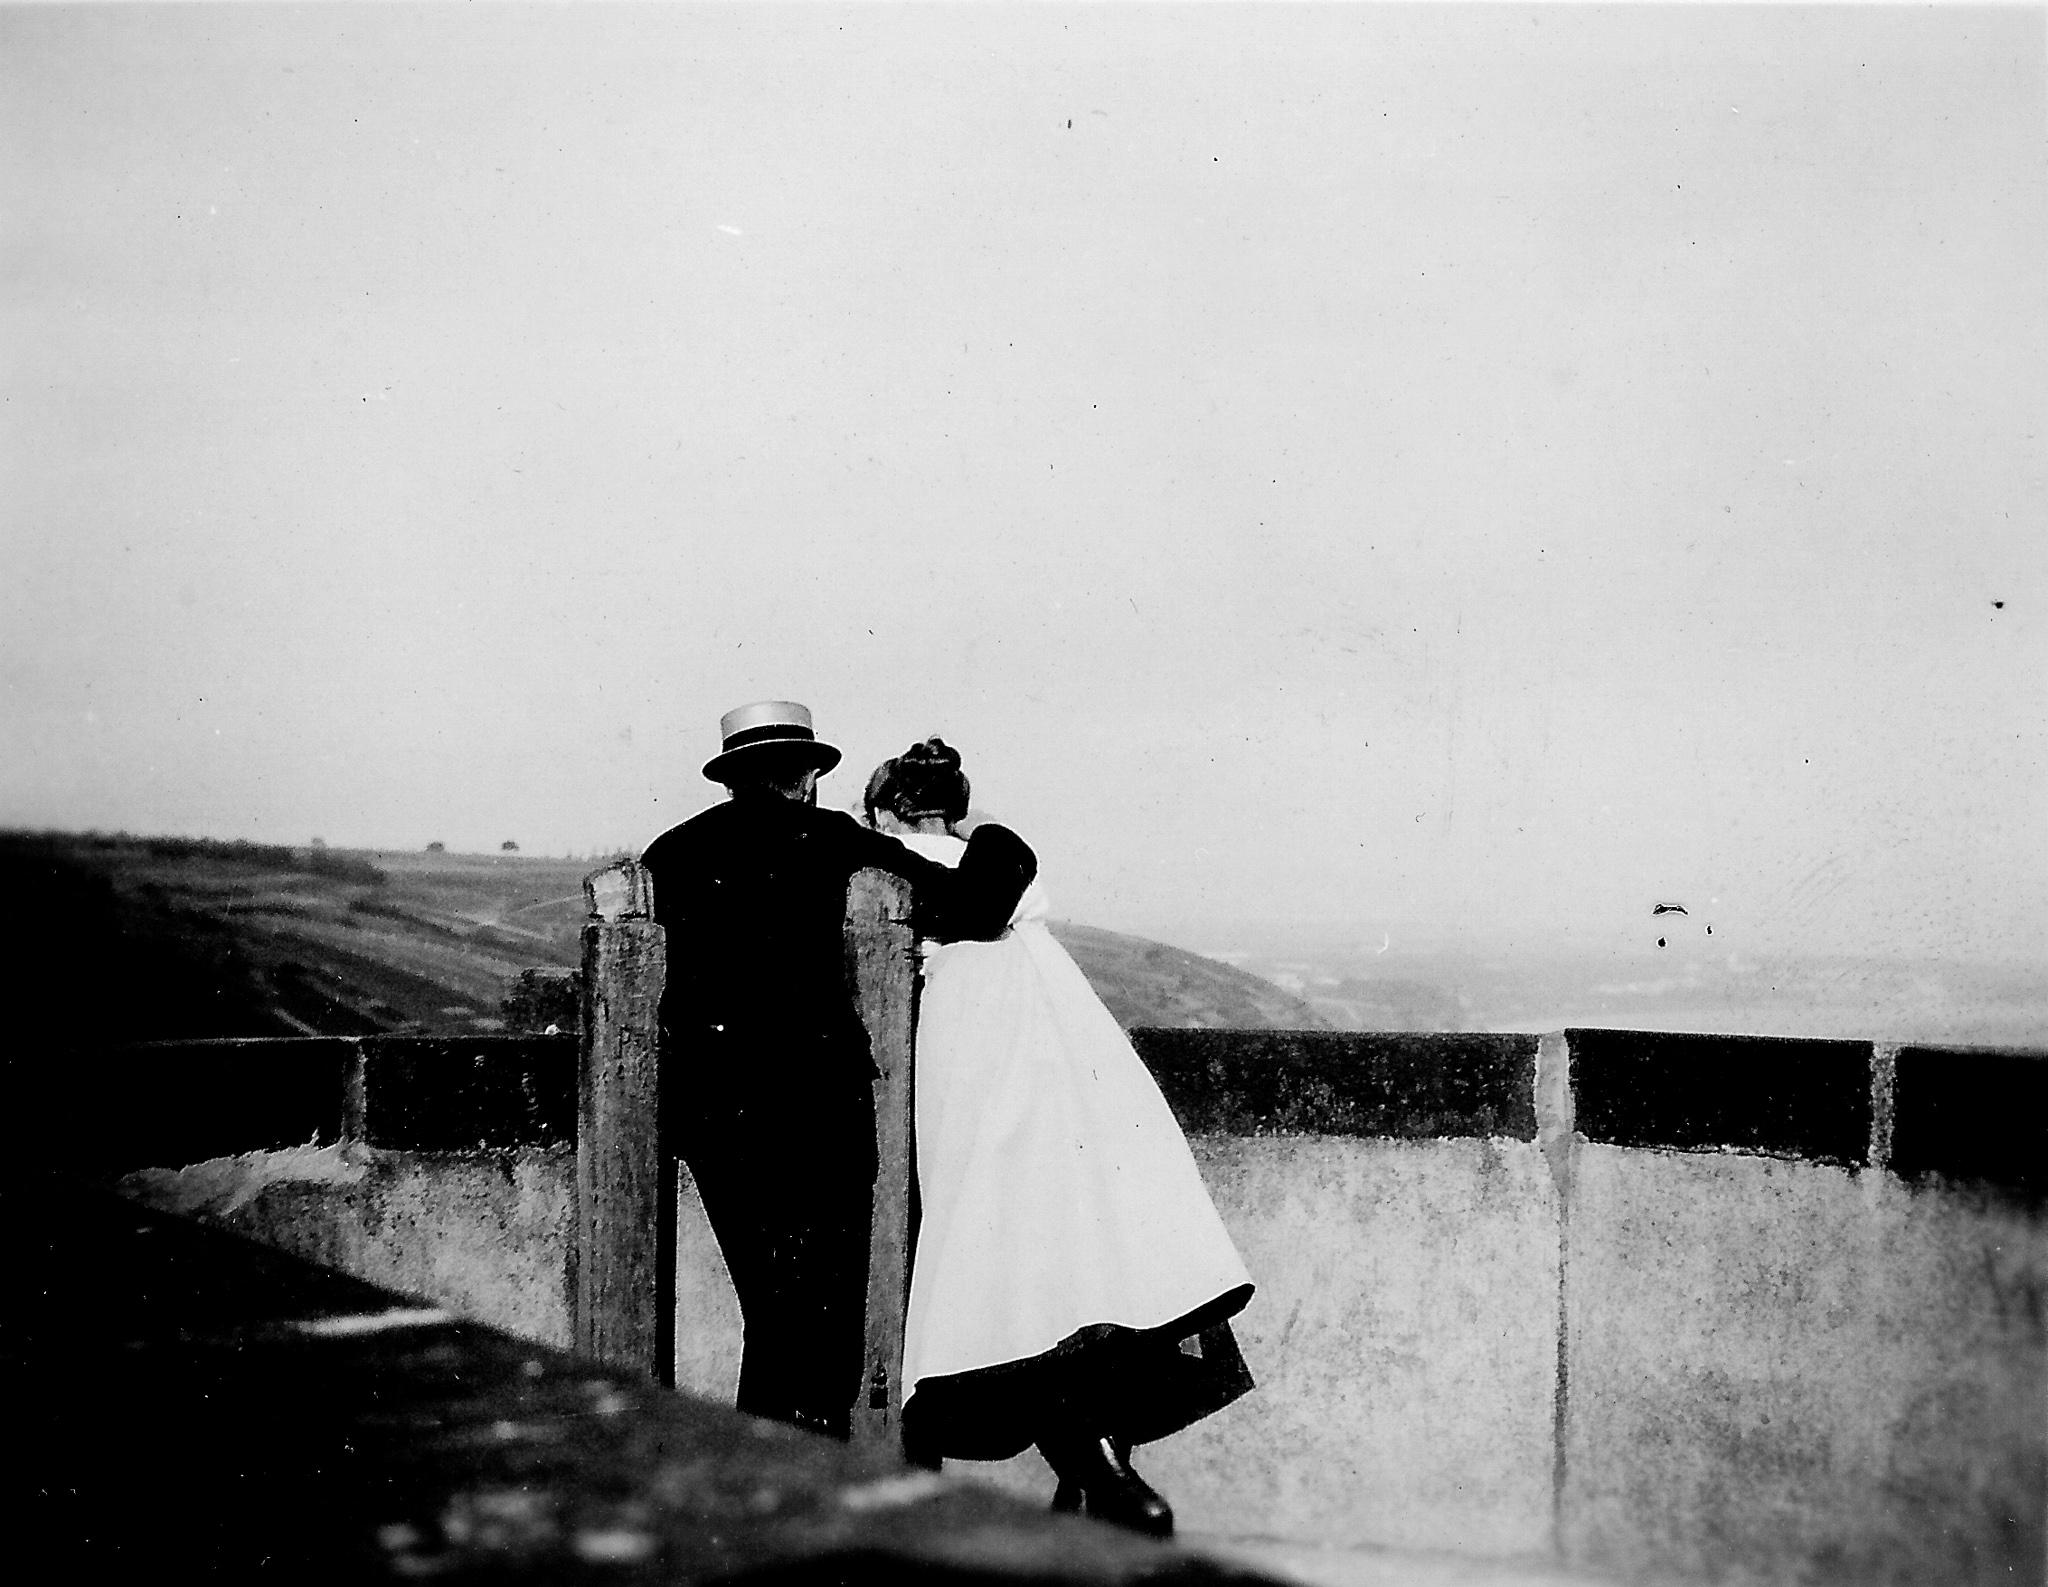 black and white photo of a man and woman embracing